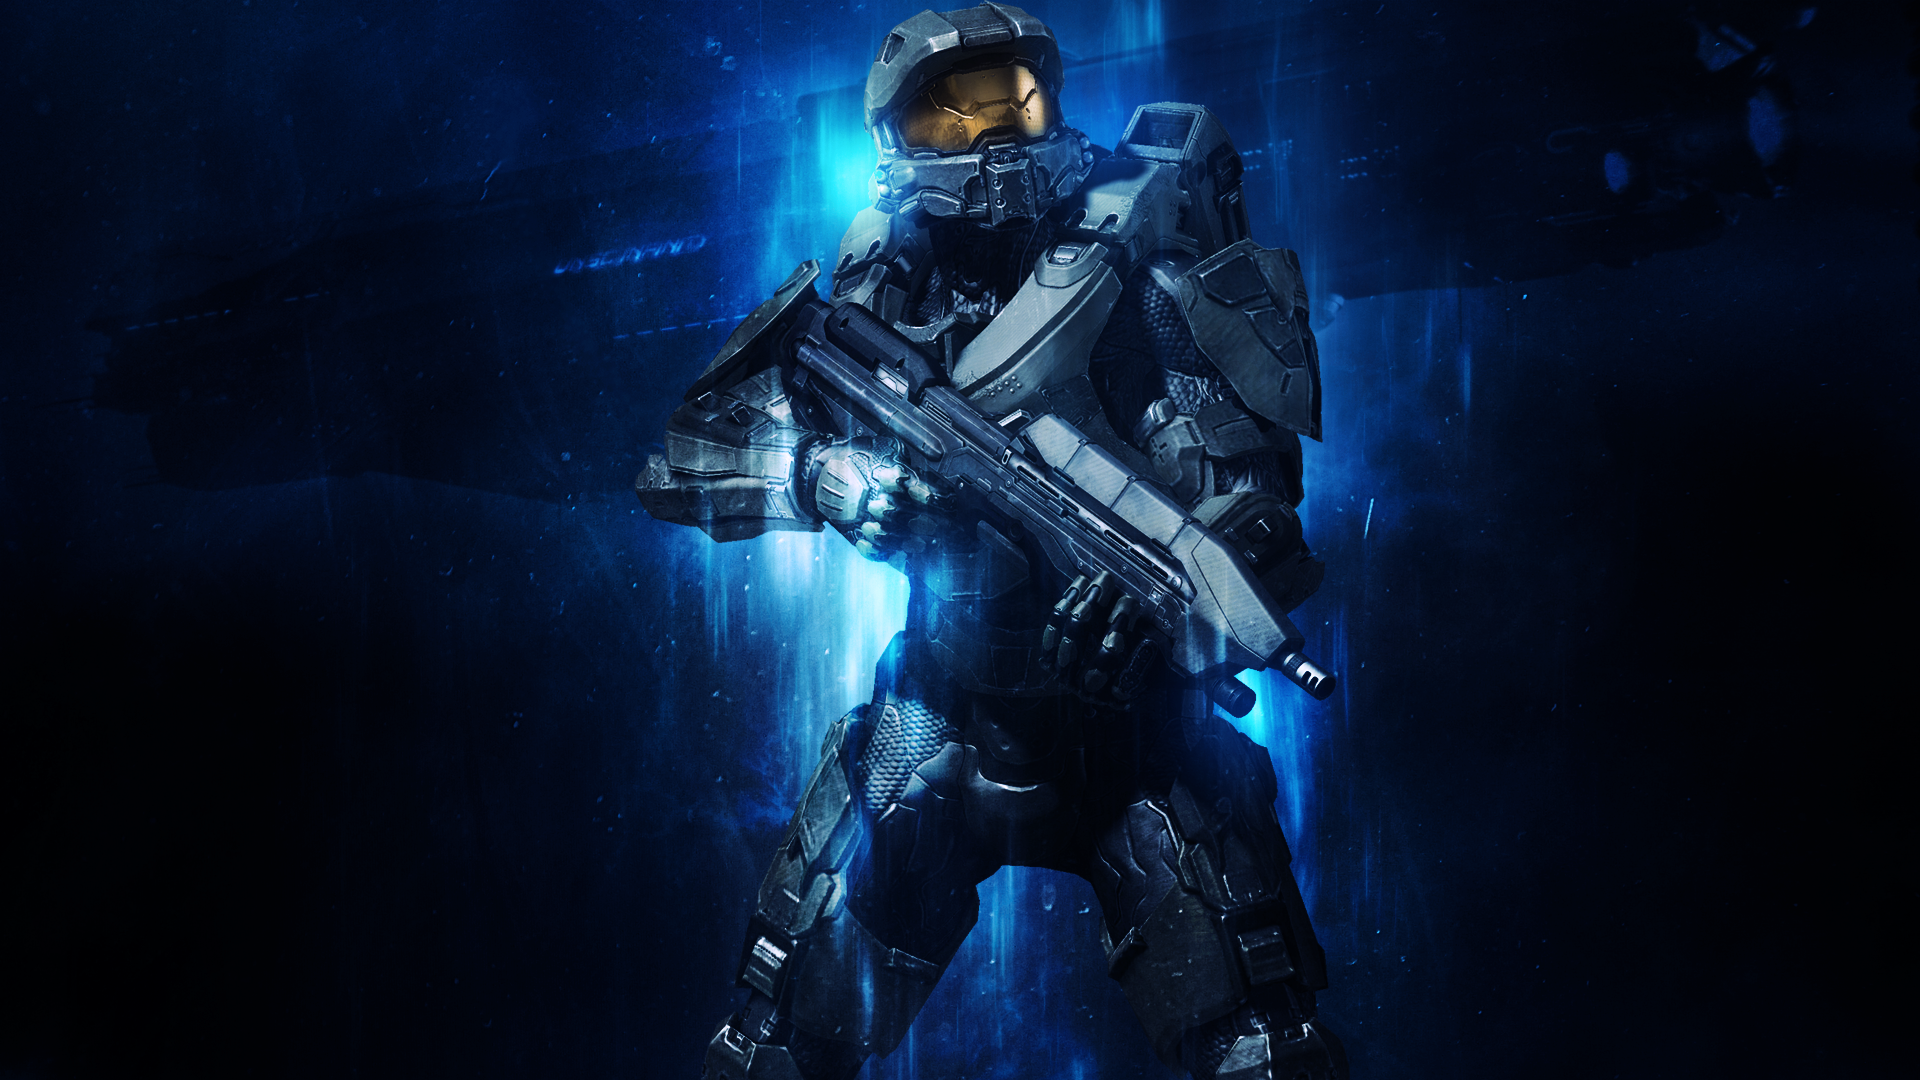 Halo 5 free hd wallpapers download halo 5 pics voltagebd Choice Image